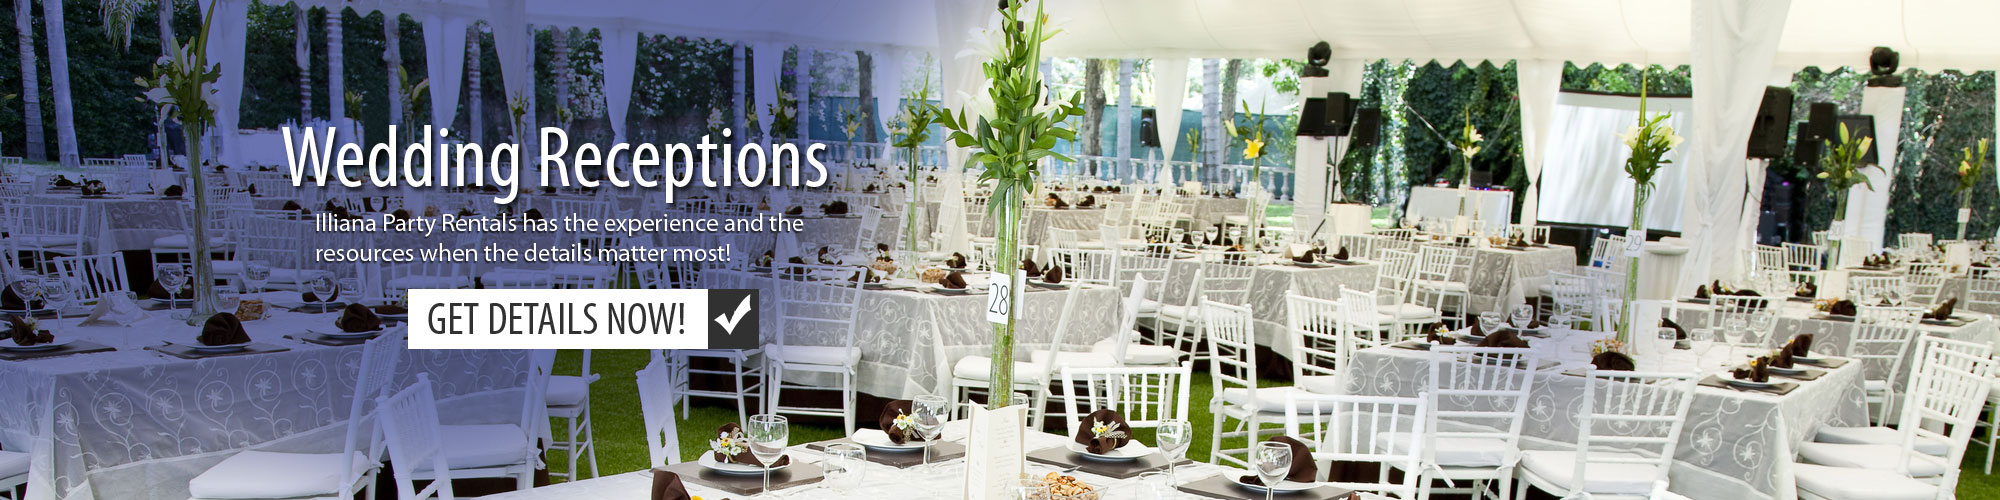 Wedding Reception Equipment Rentals